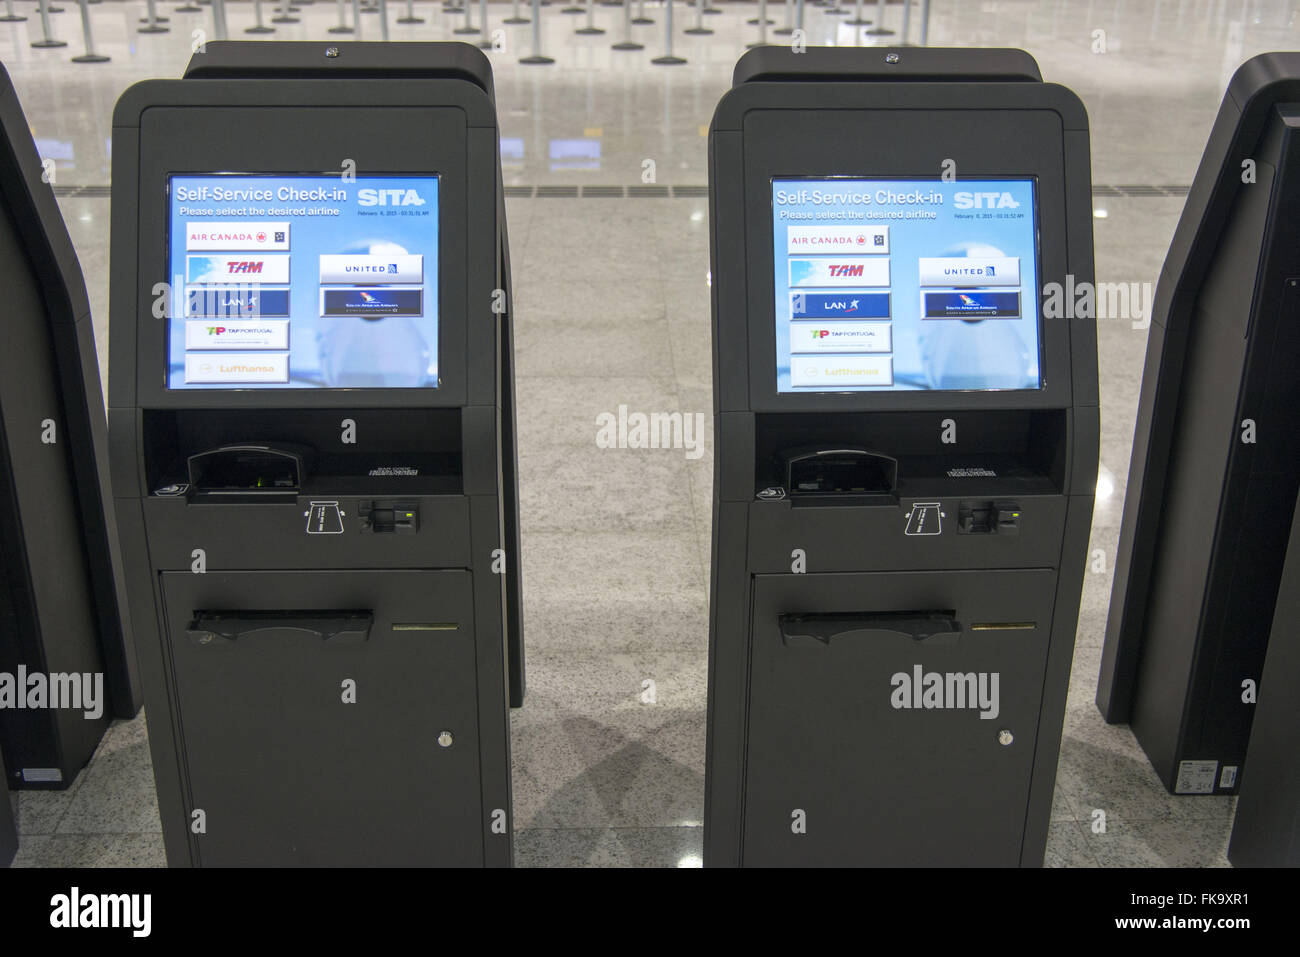 Electronic check-in machines from Terminal 3 of the São Paulo International Airport / Guarulhos - Stock Image